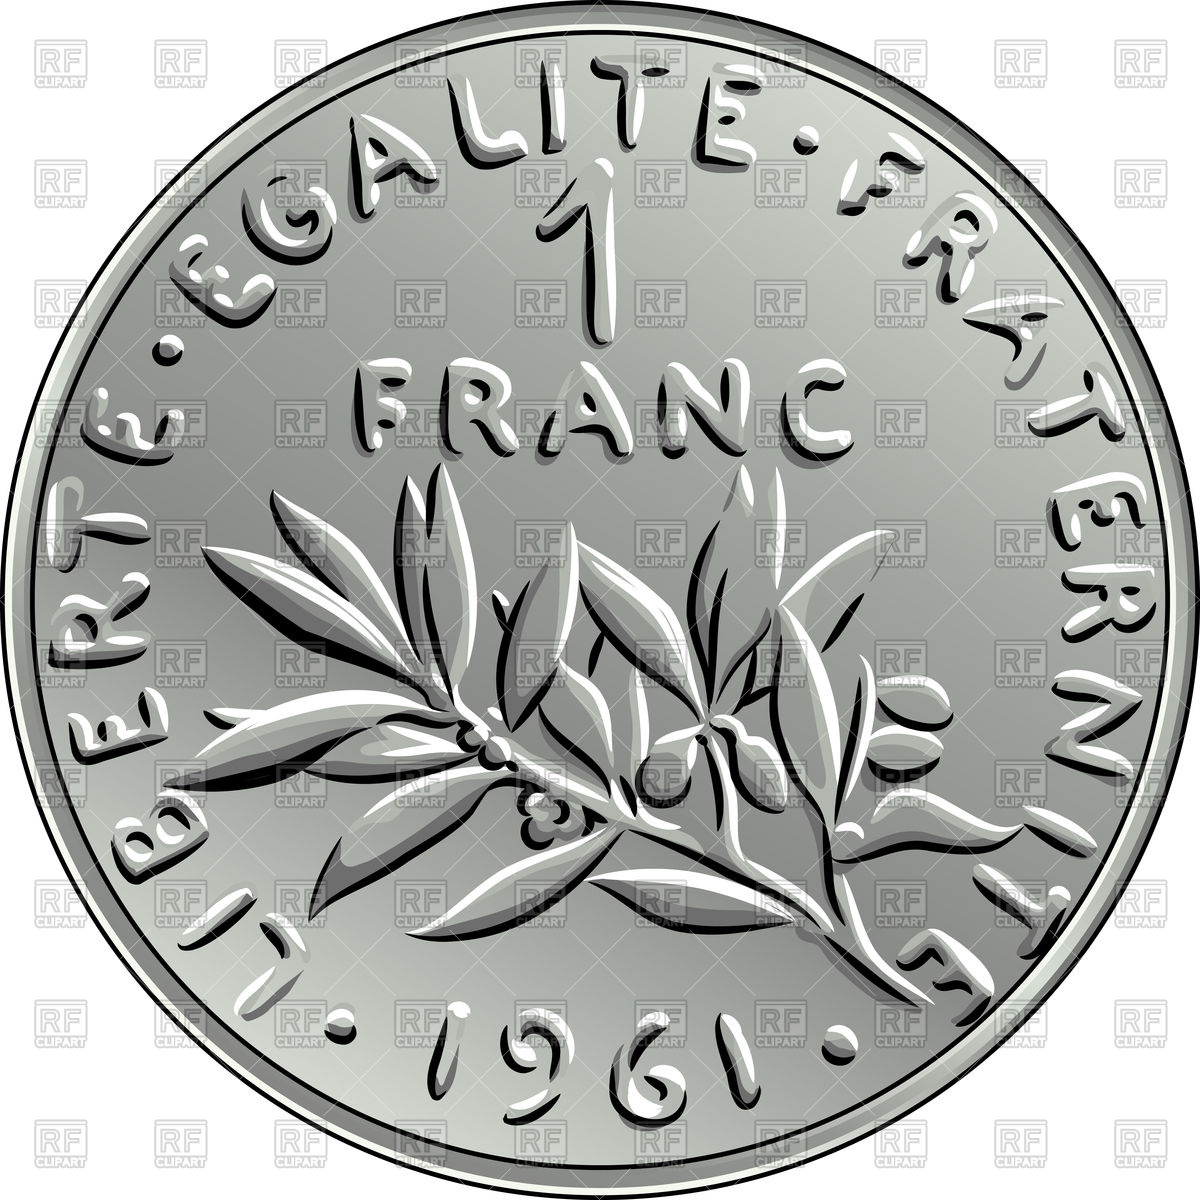 French coin.